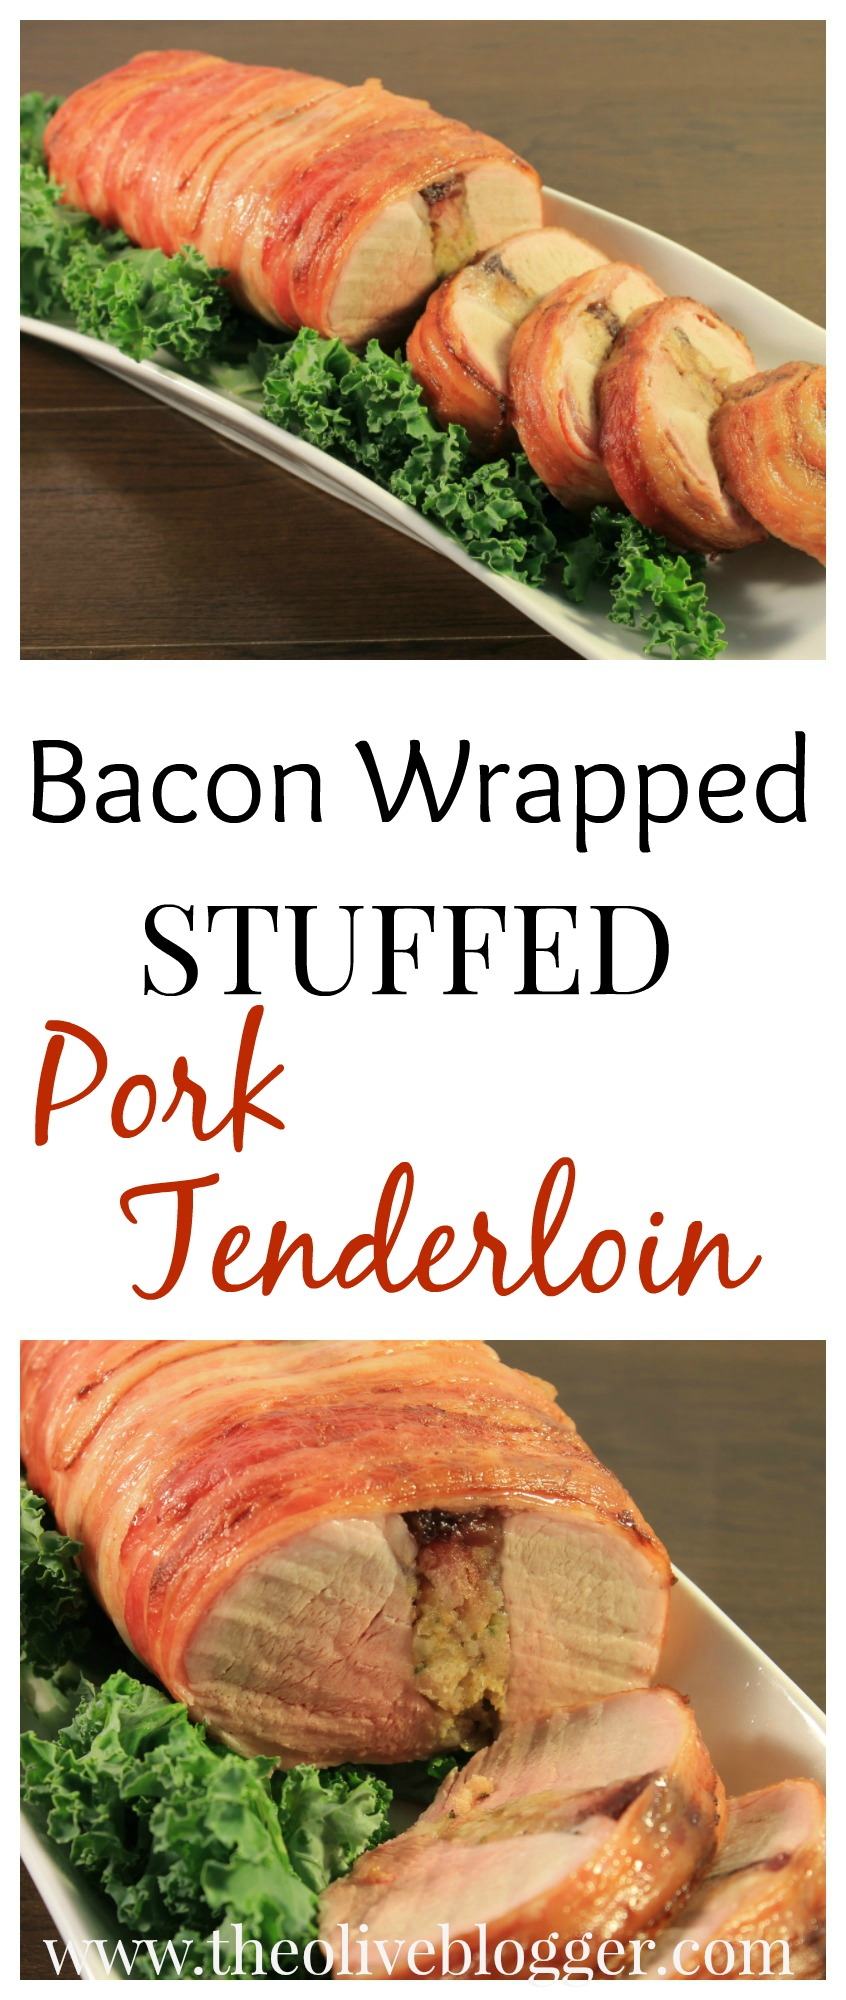 Bacon Wrapped Stuffed Pork Tenderloin - THE OLIVE BLOGGER - Recipes your family will love!